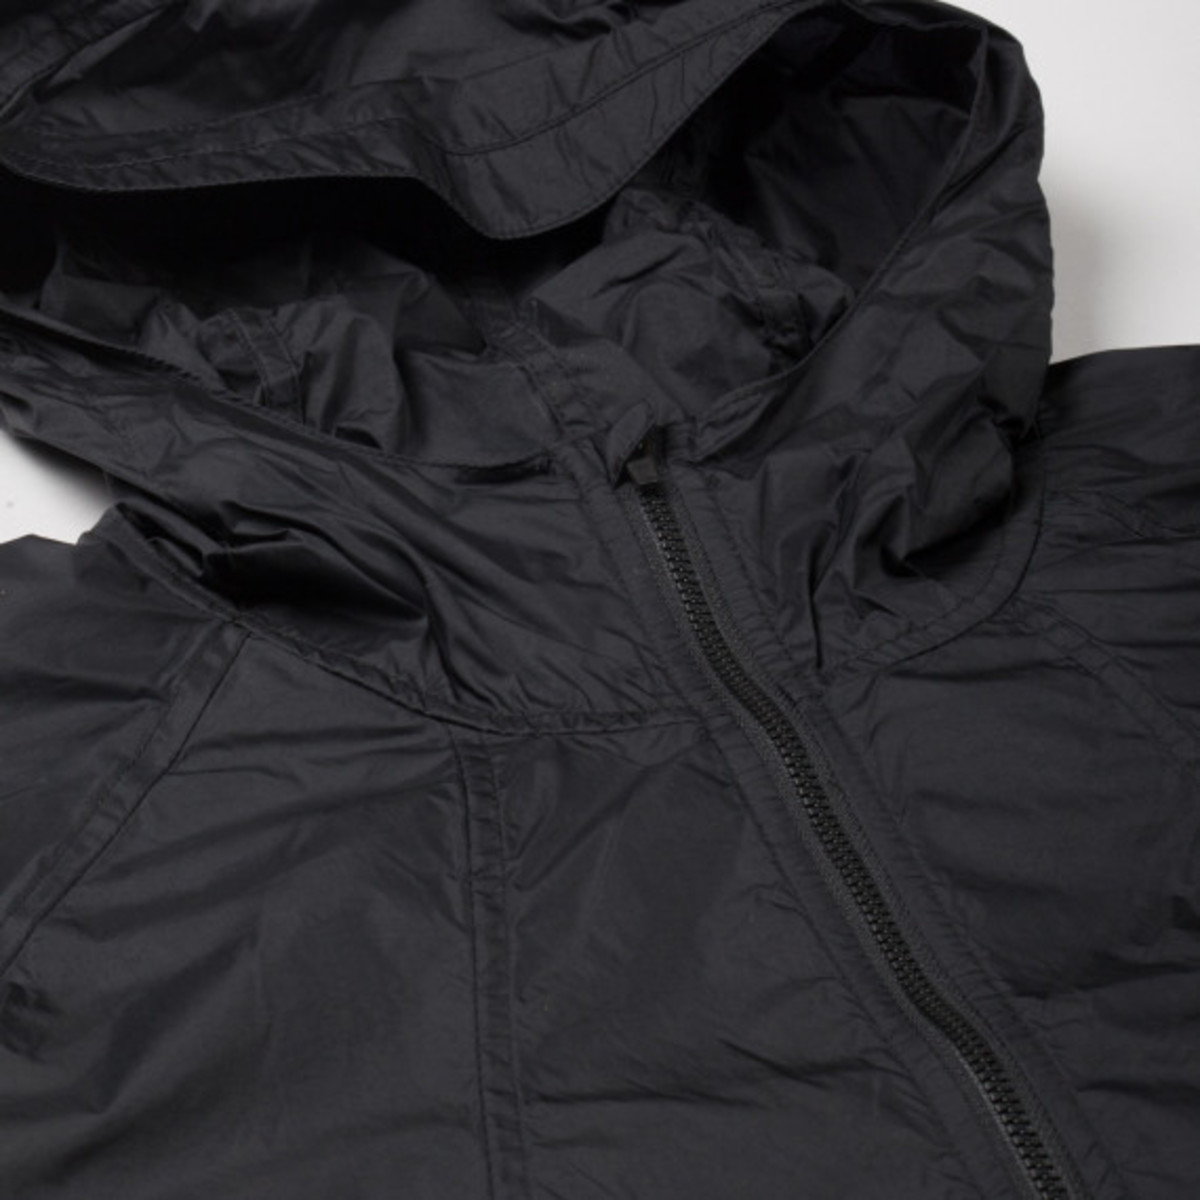 norse-projects-technical-garments-spring-2014-p